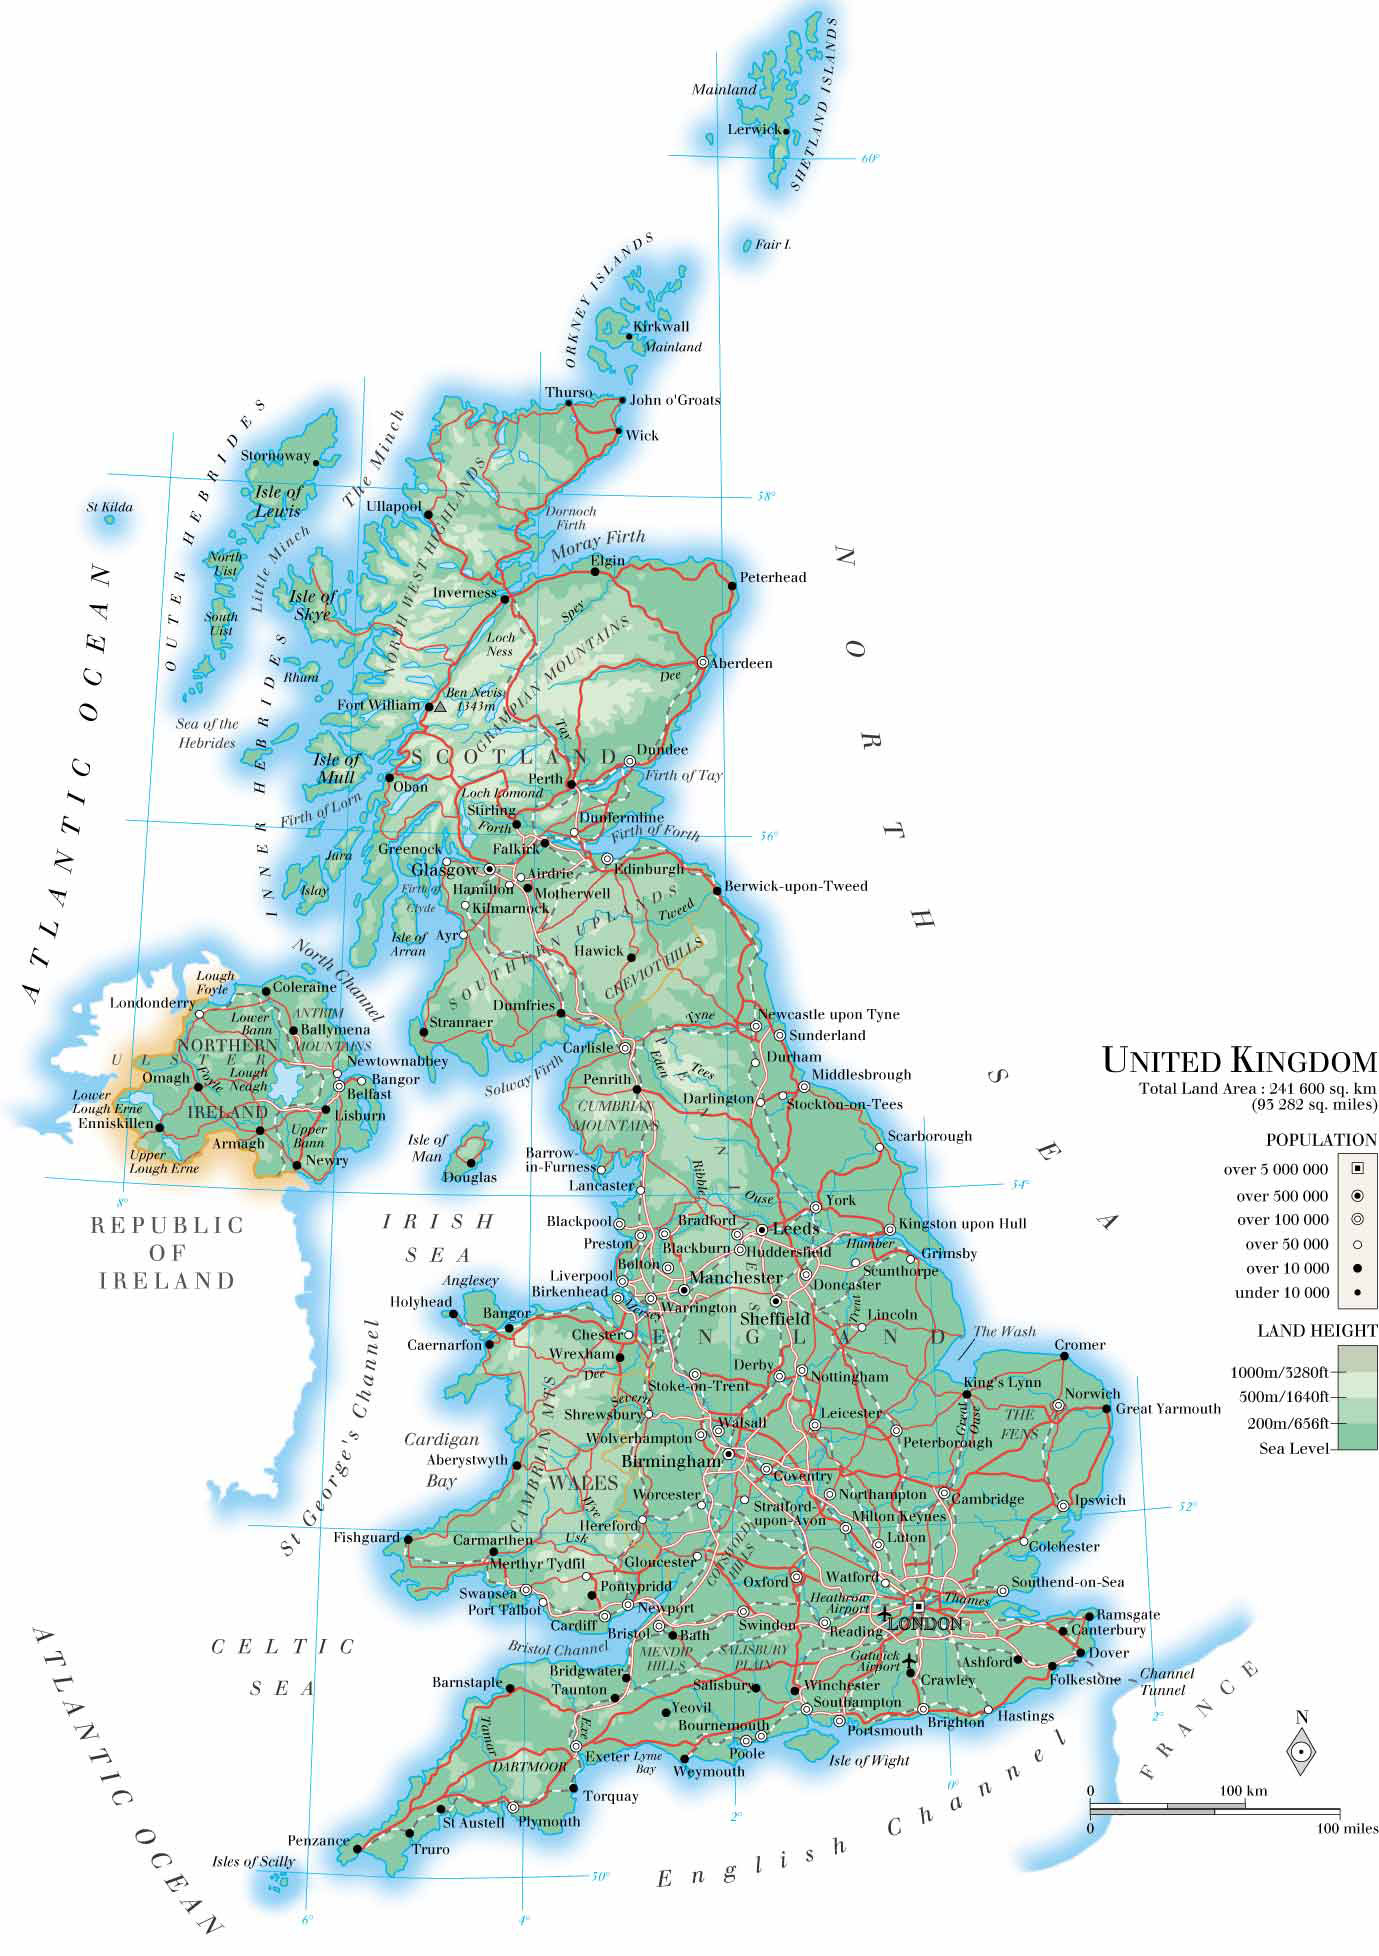 http://www.vidiani.com/maps/maps_of_europe/maps_of_united_kingdom/large_detailed_physical_map_of_united_kingdom_with_roads_cities_and_airports_for_free.jpg